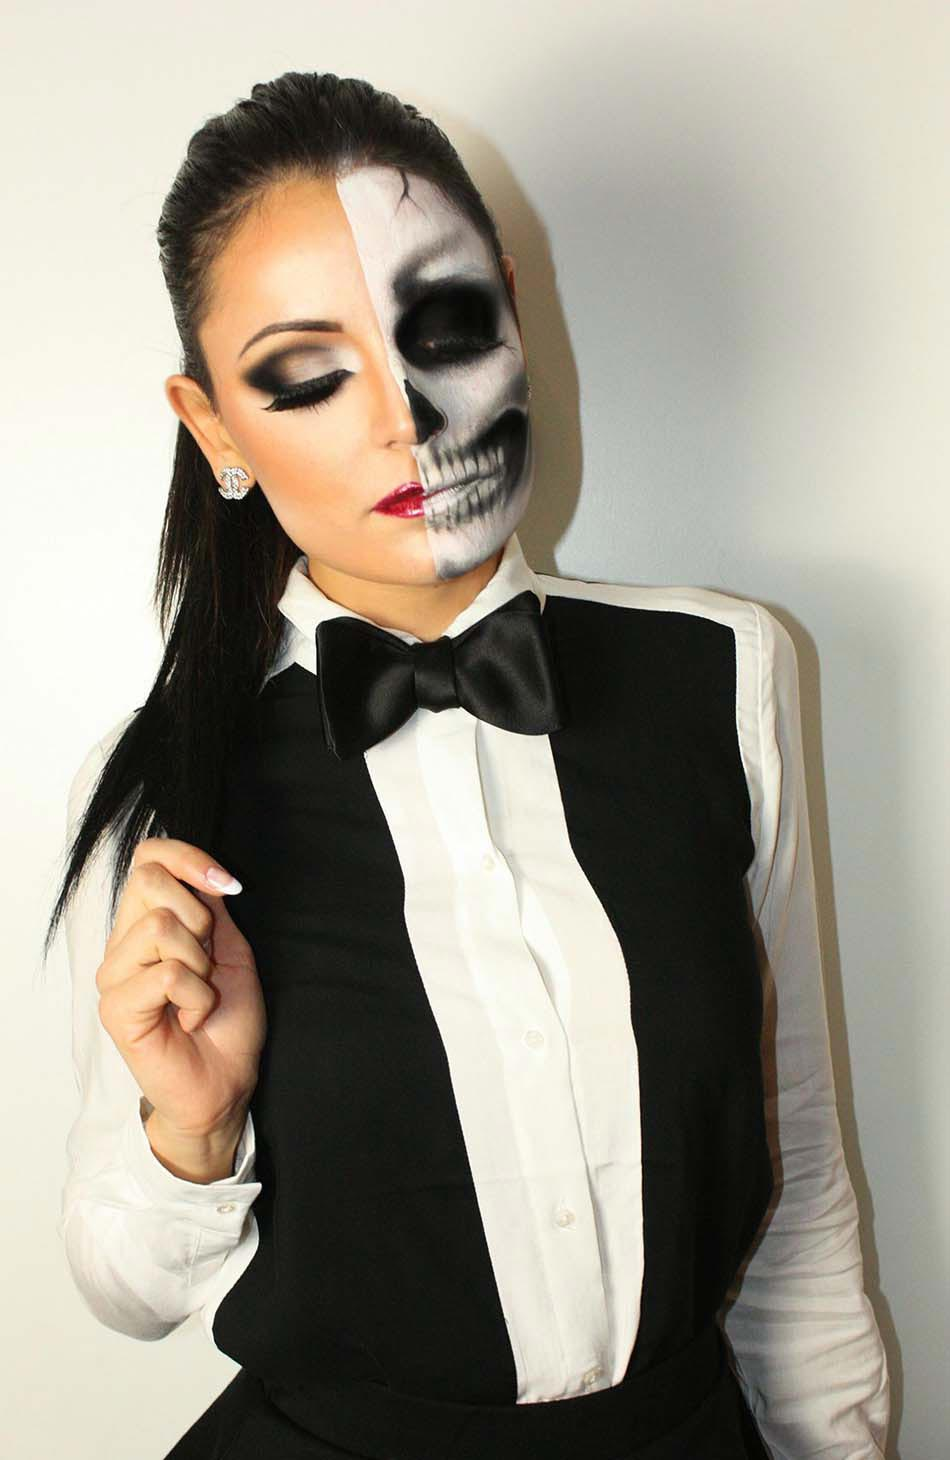 15 id es de maquillage halloween myst re horreur ou gore design feria - Image maquillage halloween ...